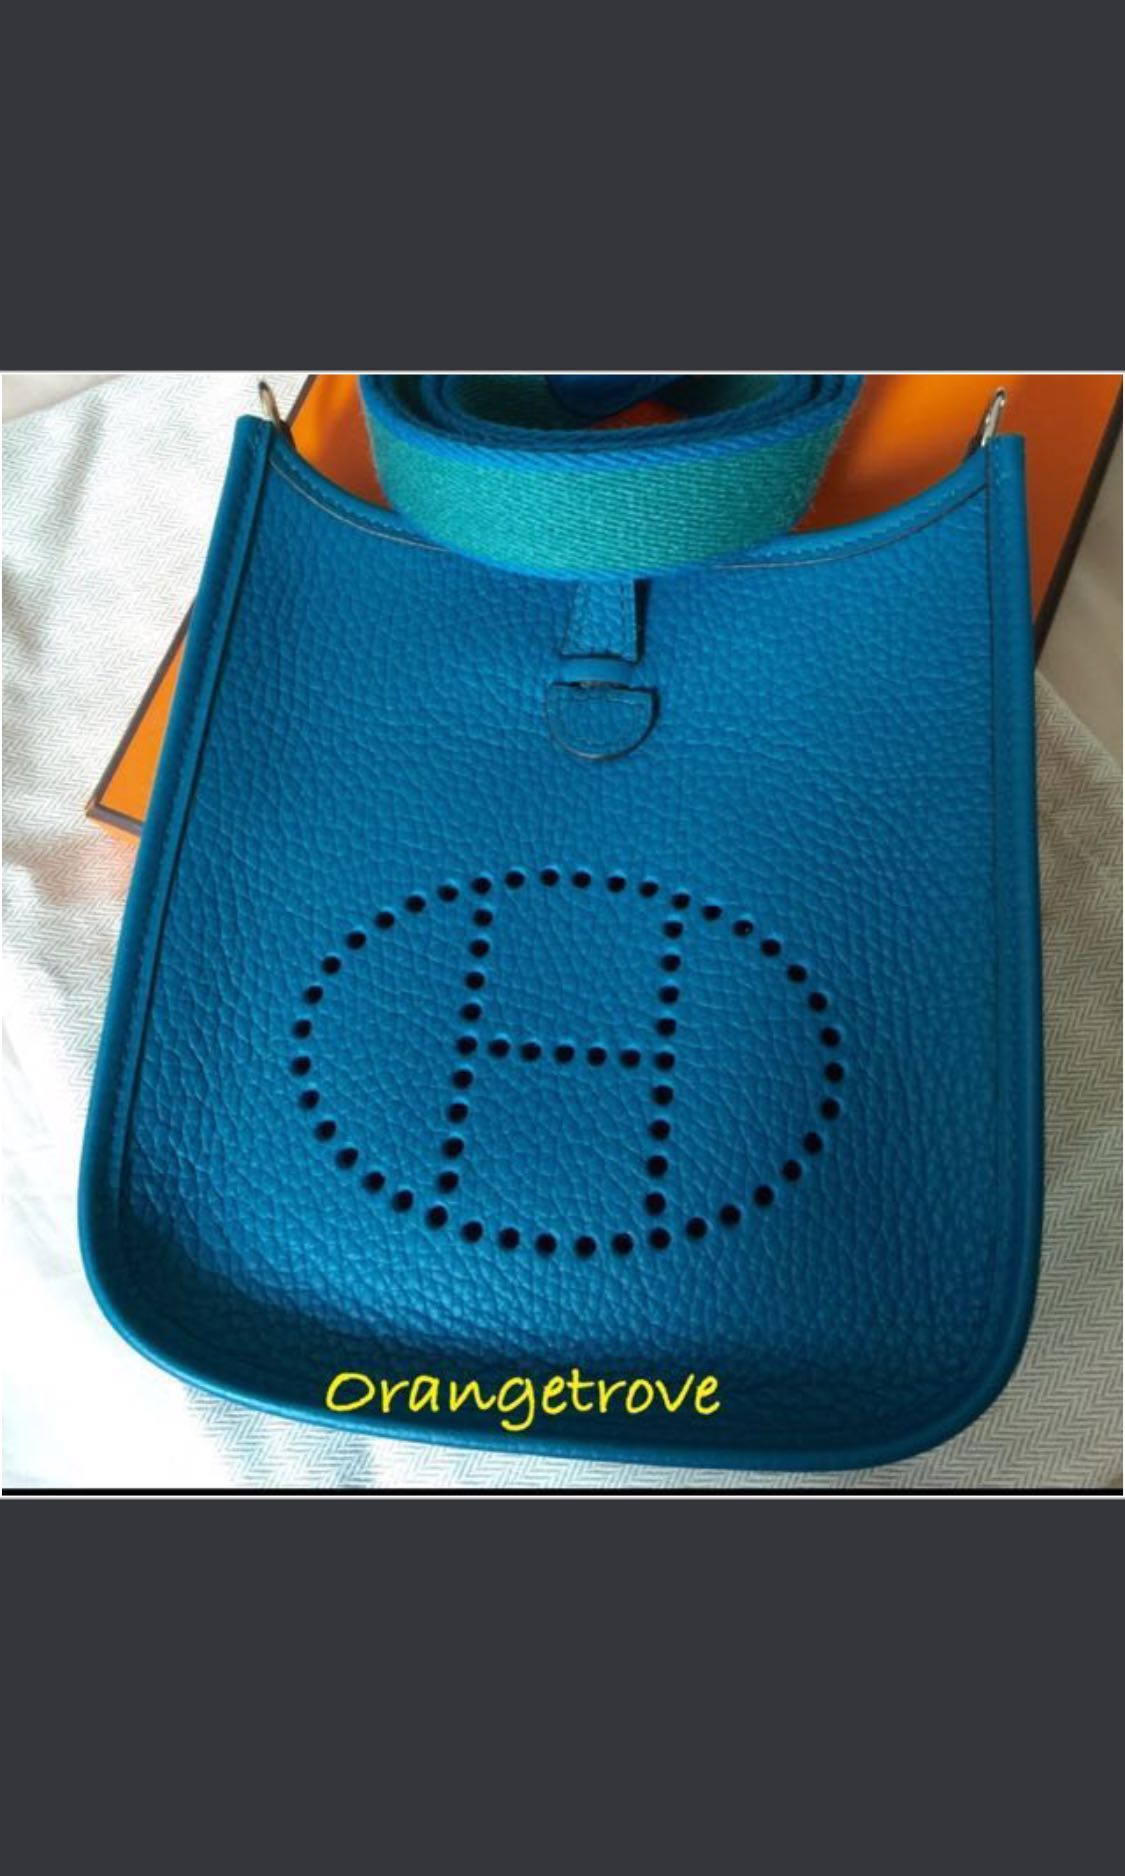 925e072e8d52 SALE!!!! Hermes Mini Evelyne Tpm In Bleu Izmir. PM FOR UNBELIEVABLE ...